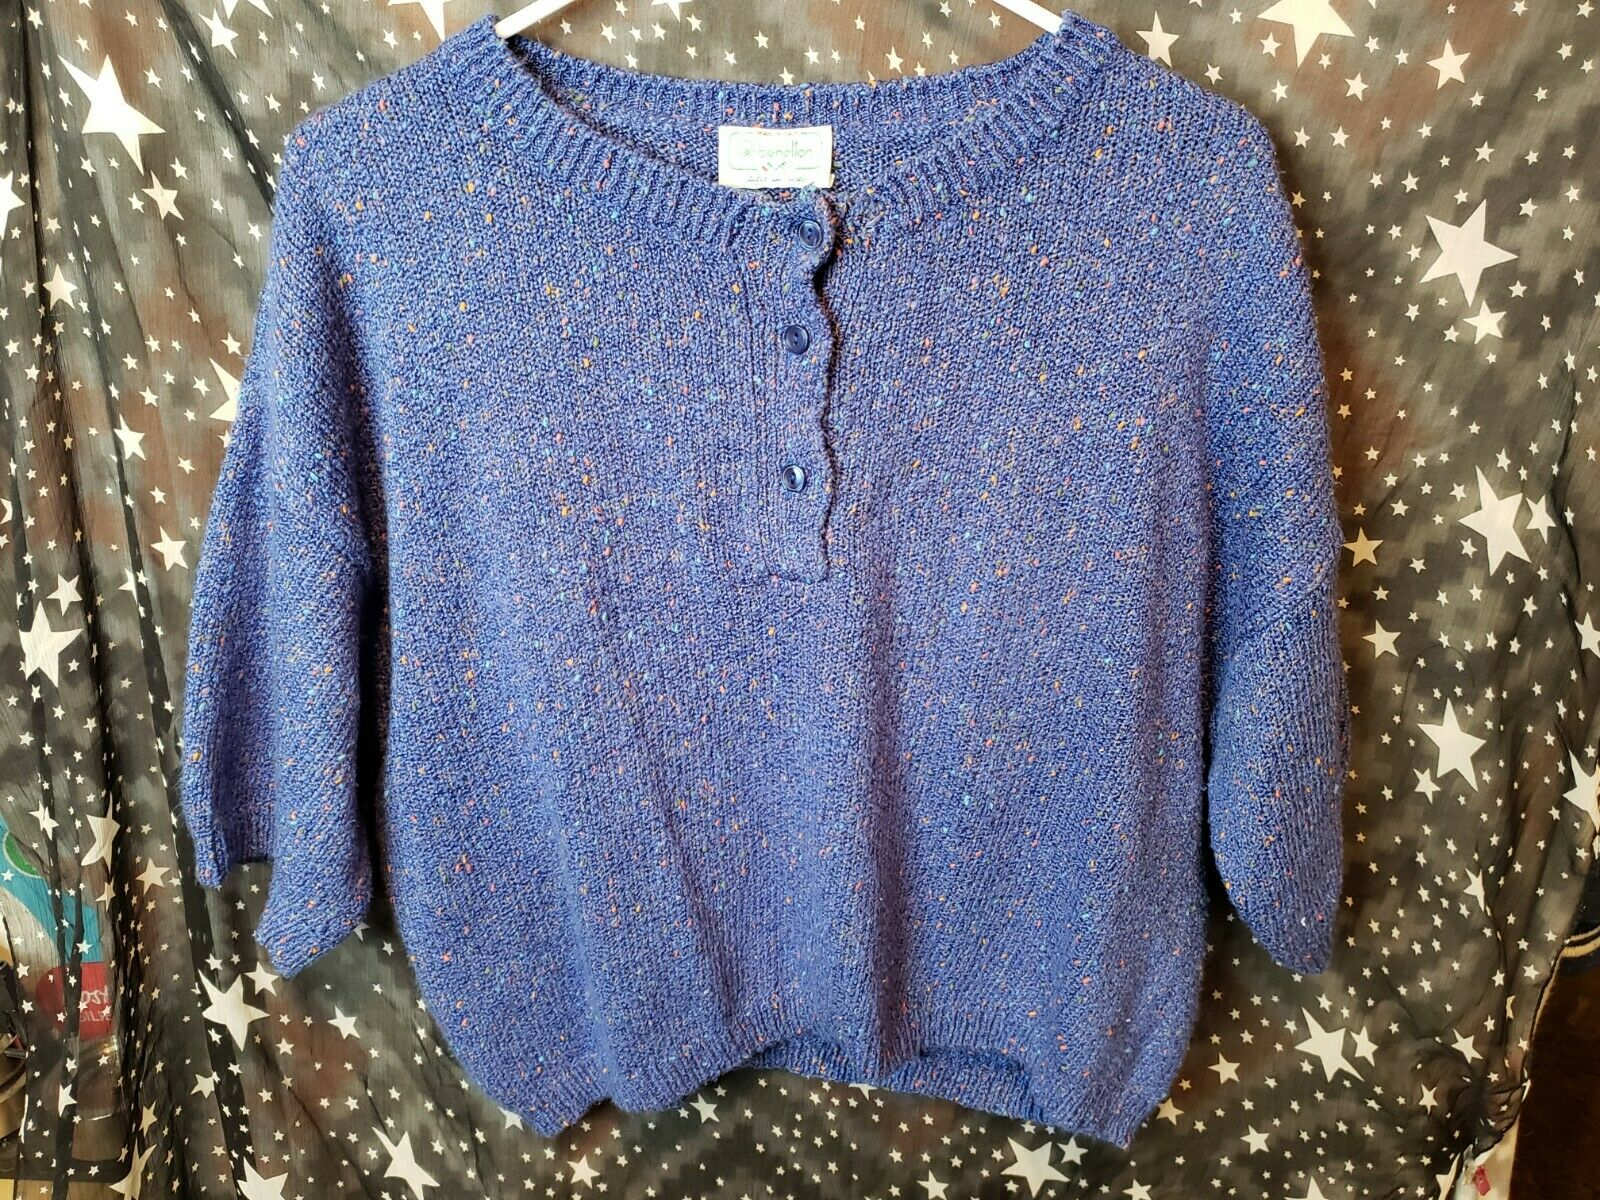 Benetton Cropped Sweater Blue Pullover Size Medium Made in Italy Vintage